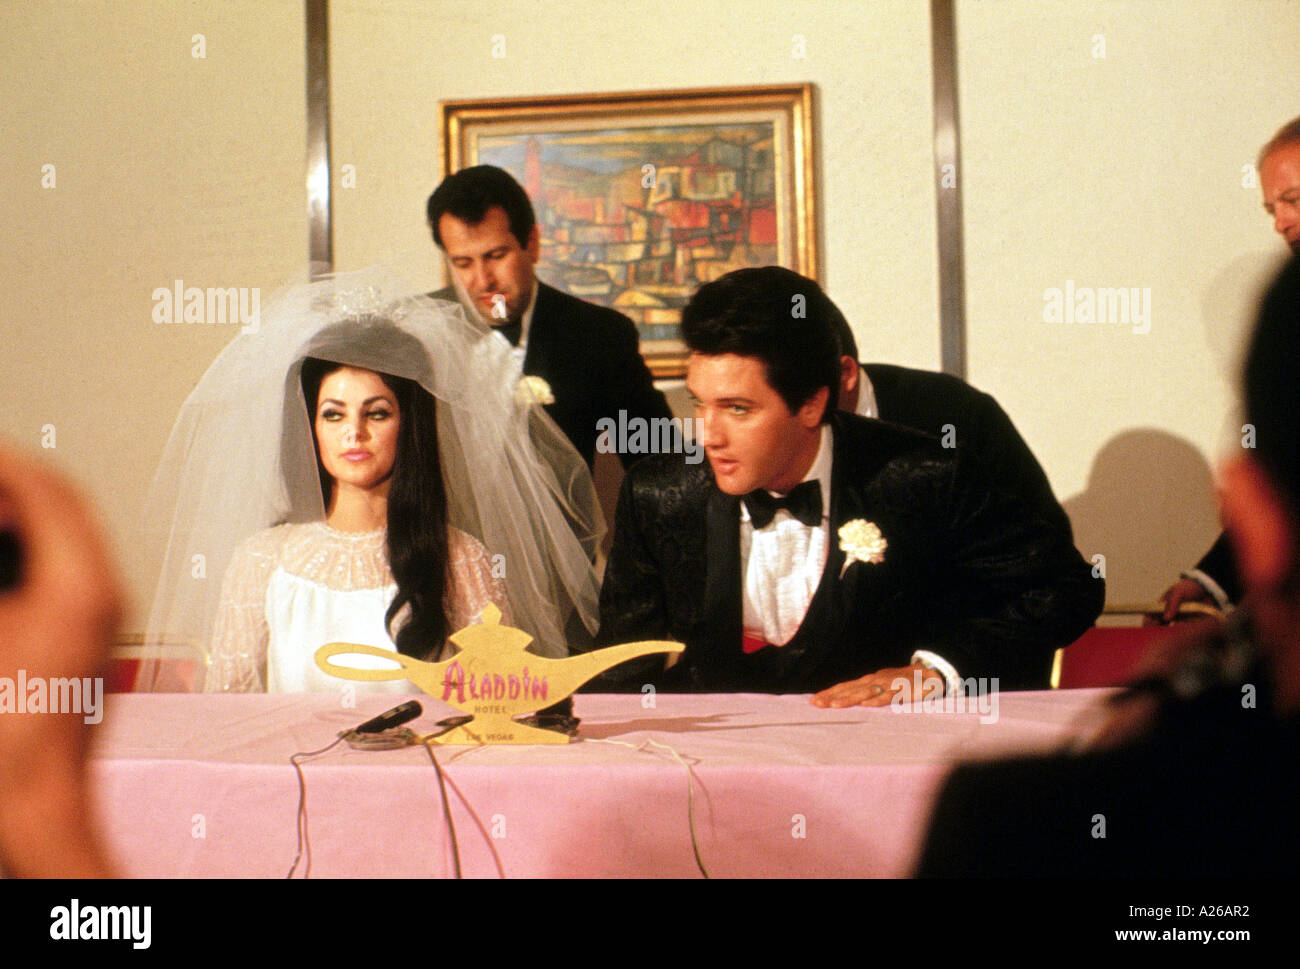 elvis presley wedding press conference 1967 see caption A26AR2 - Sell My Wedding Dress